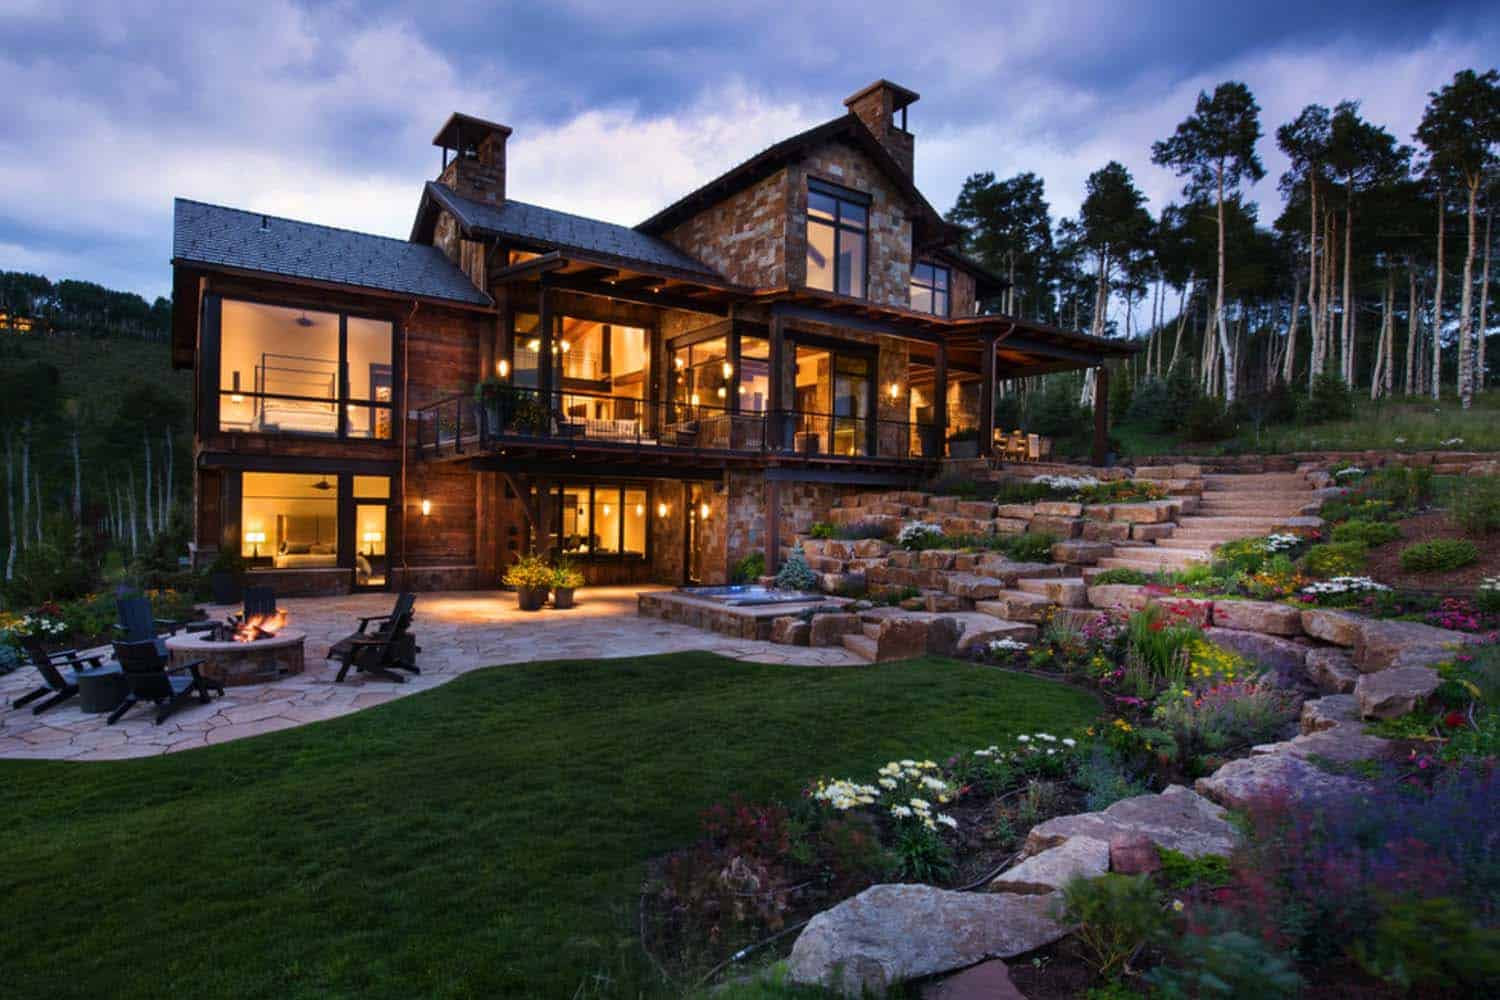 Contemporary mountain retreat in colorado infused with warmth for The mountain house